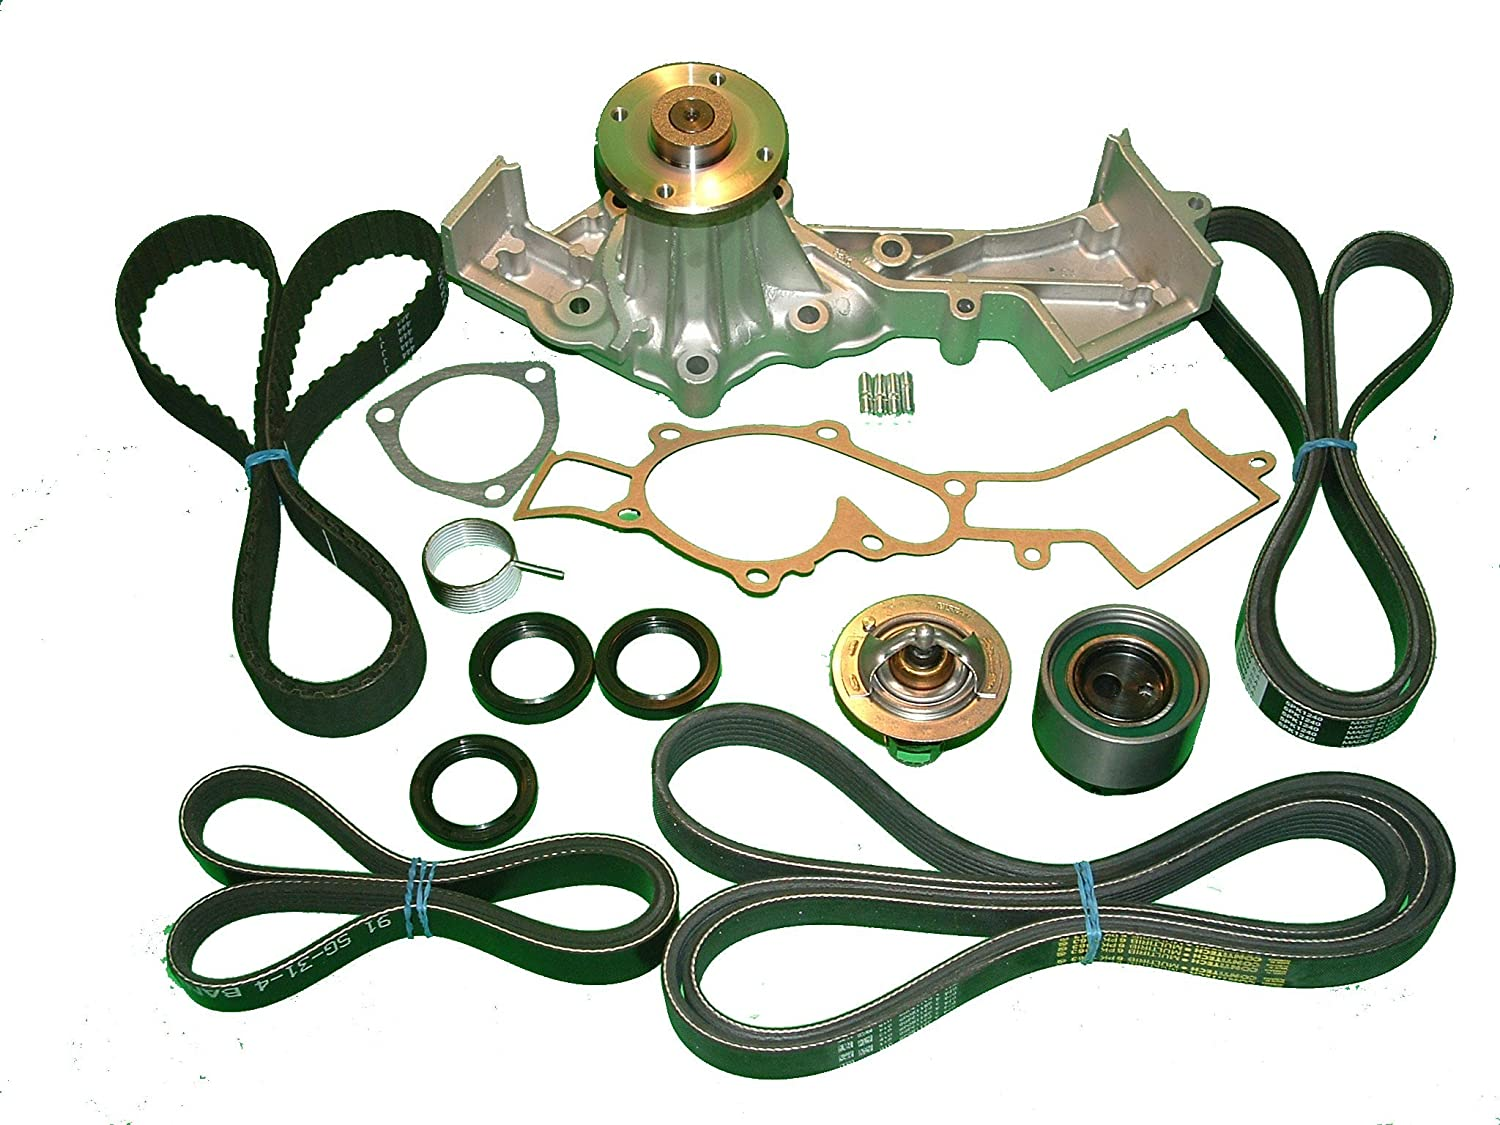 Amazon.com: TBK Timing Belt Kit Nissan Frontier 2001 to 2002 V6: Automotive